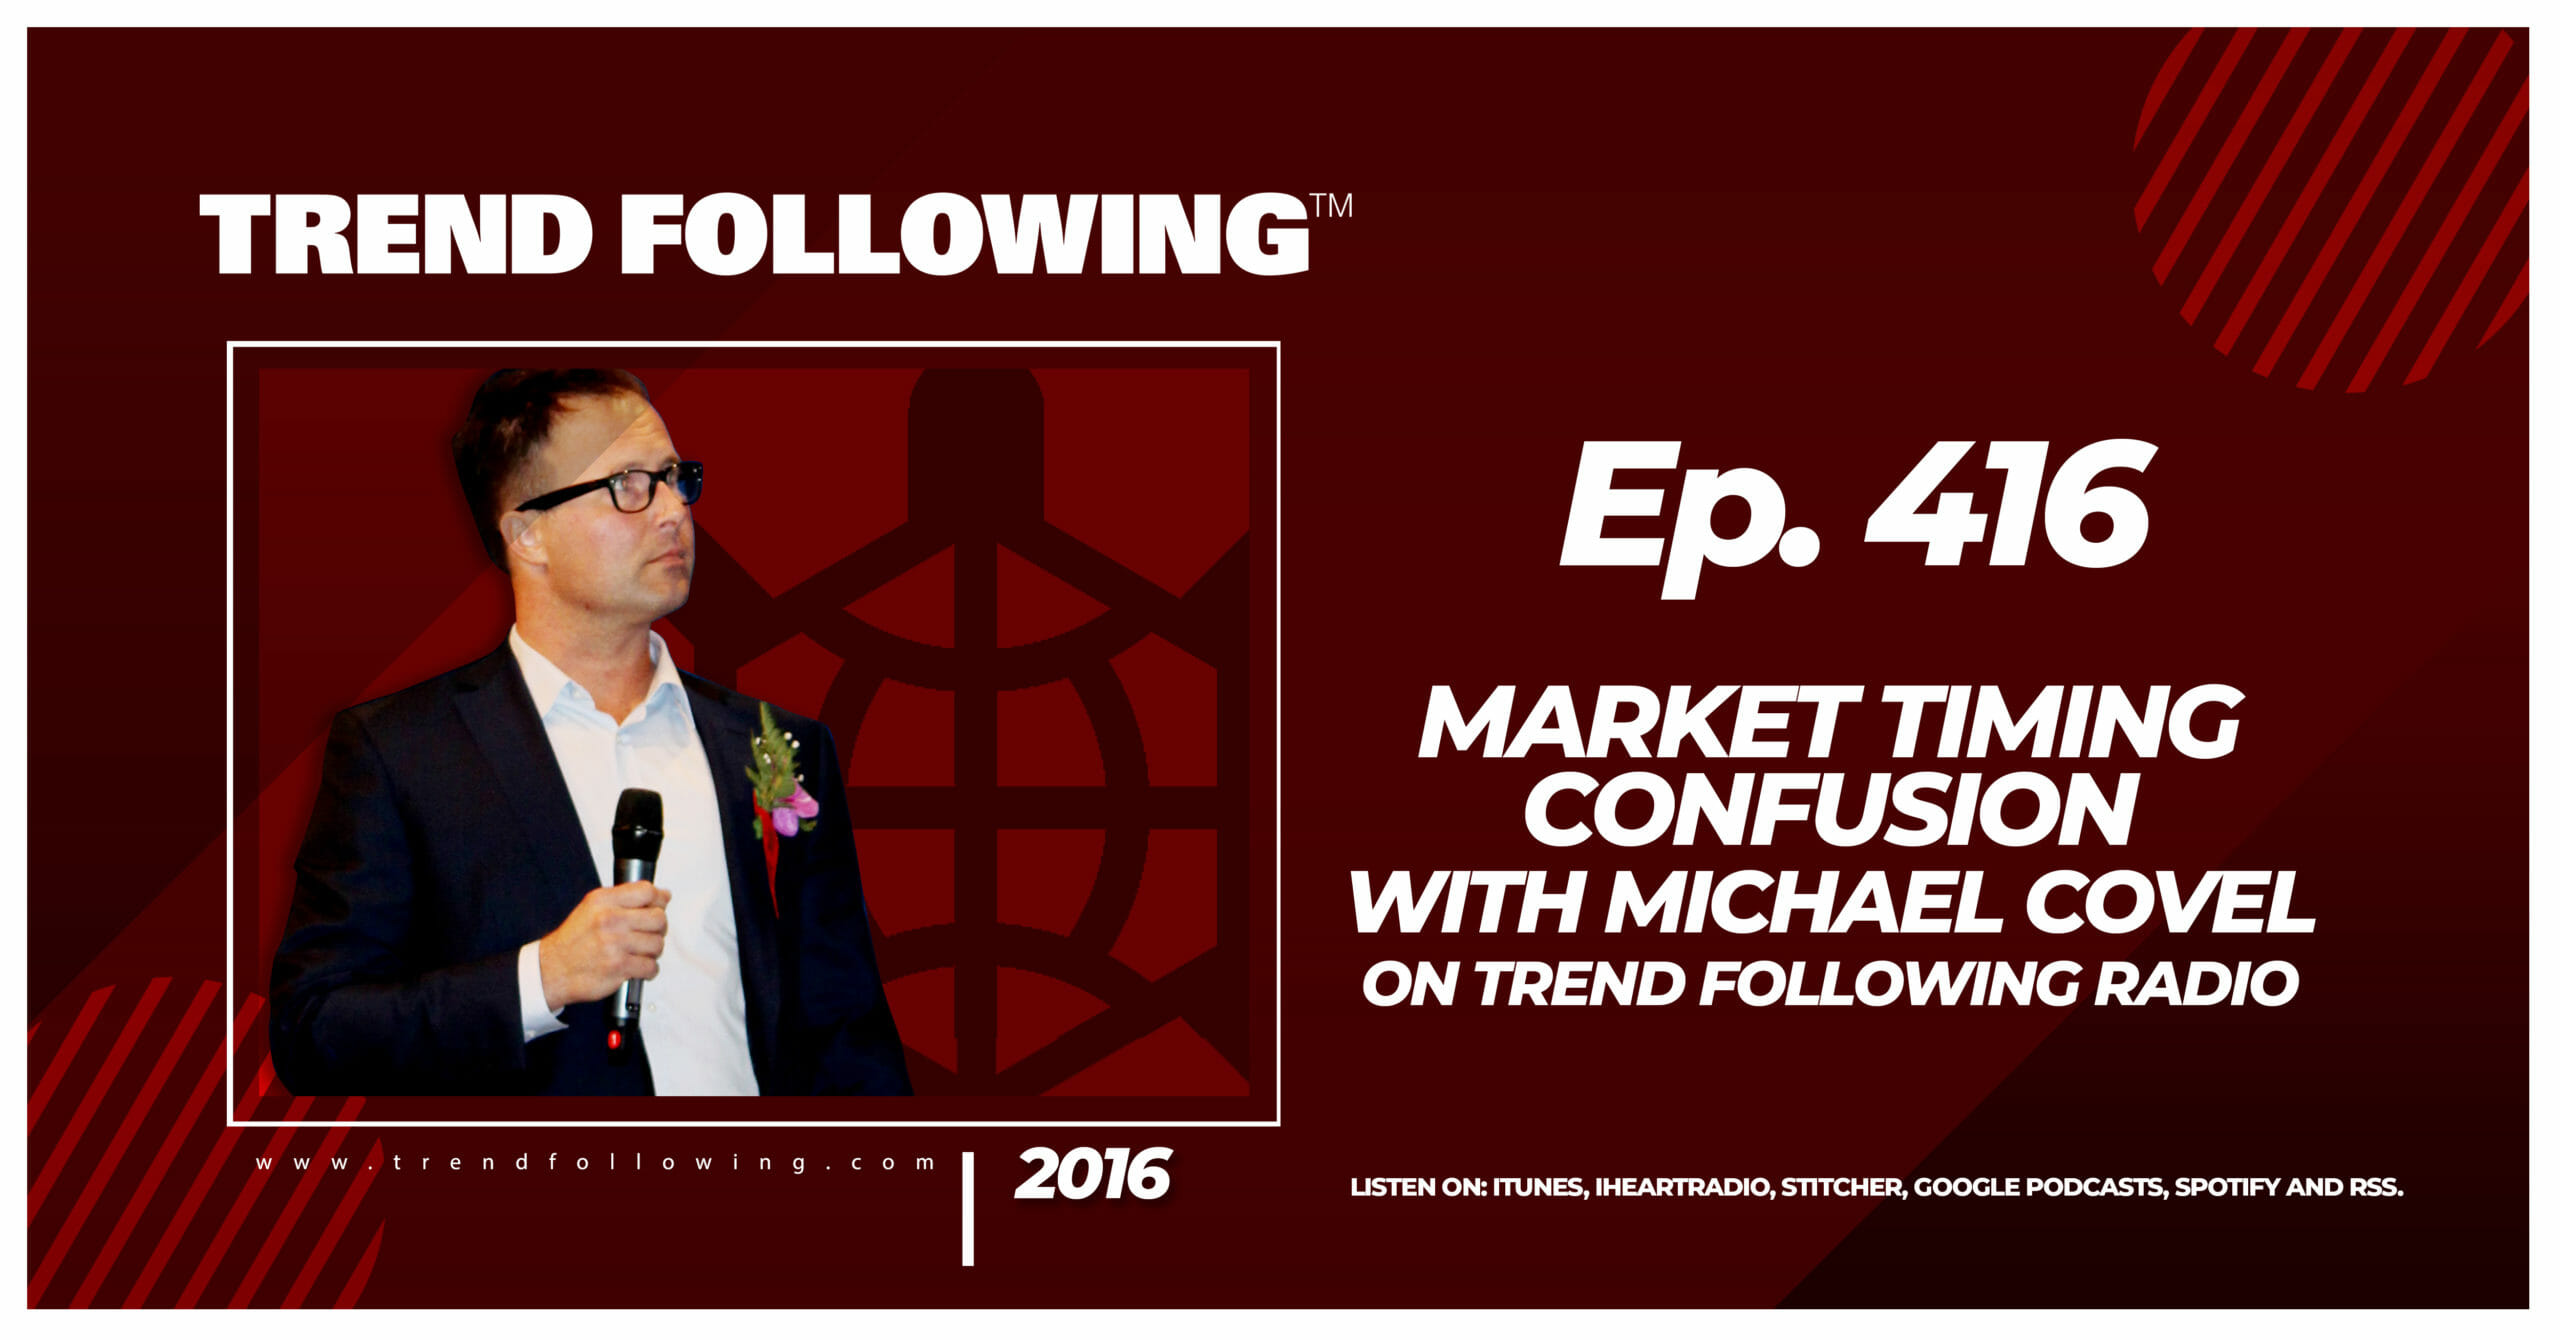 Market Timing Confusion with Michael Covel on Trend Following Radio